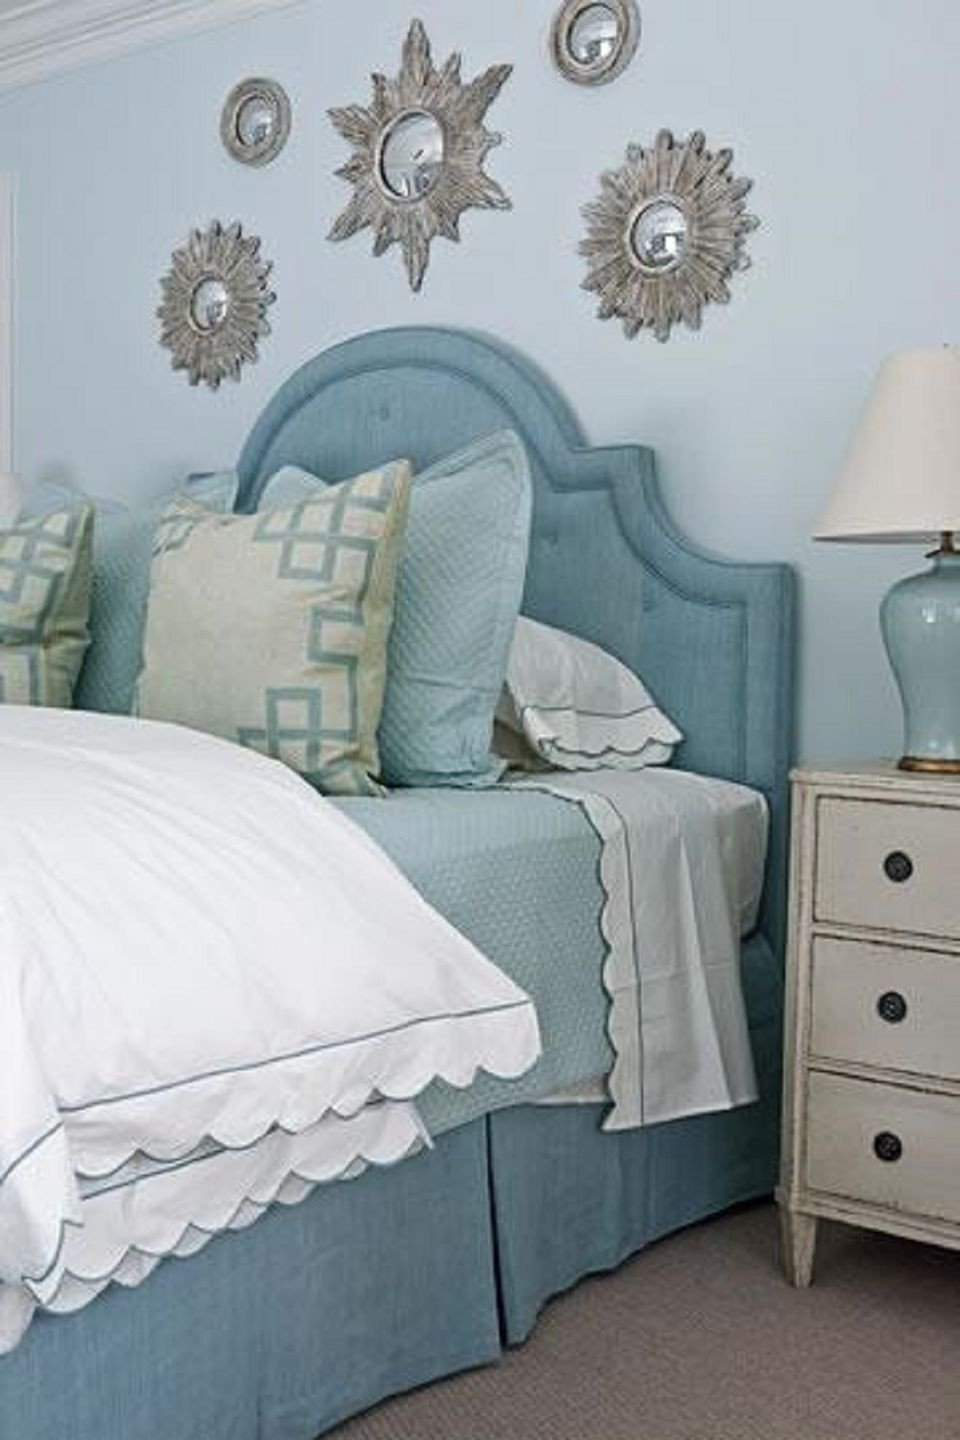 Teal and Black Bedroom Ideas Awesome 25 Stunning Blue Bedroom Ideas